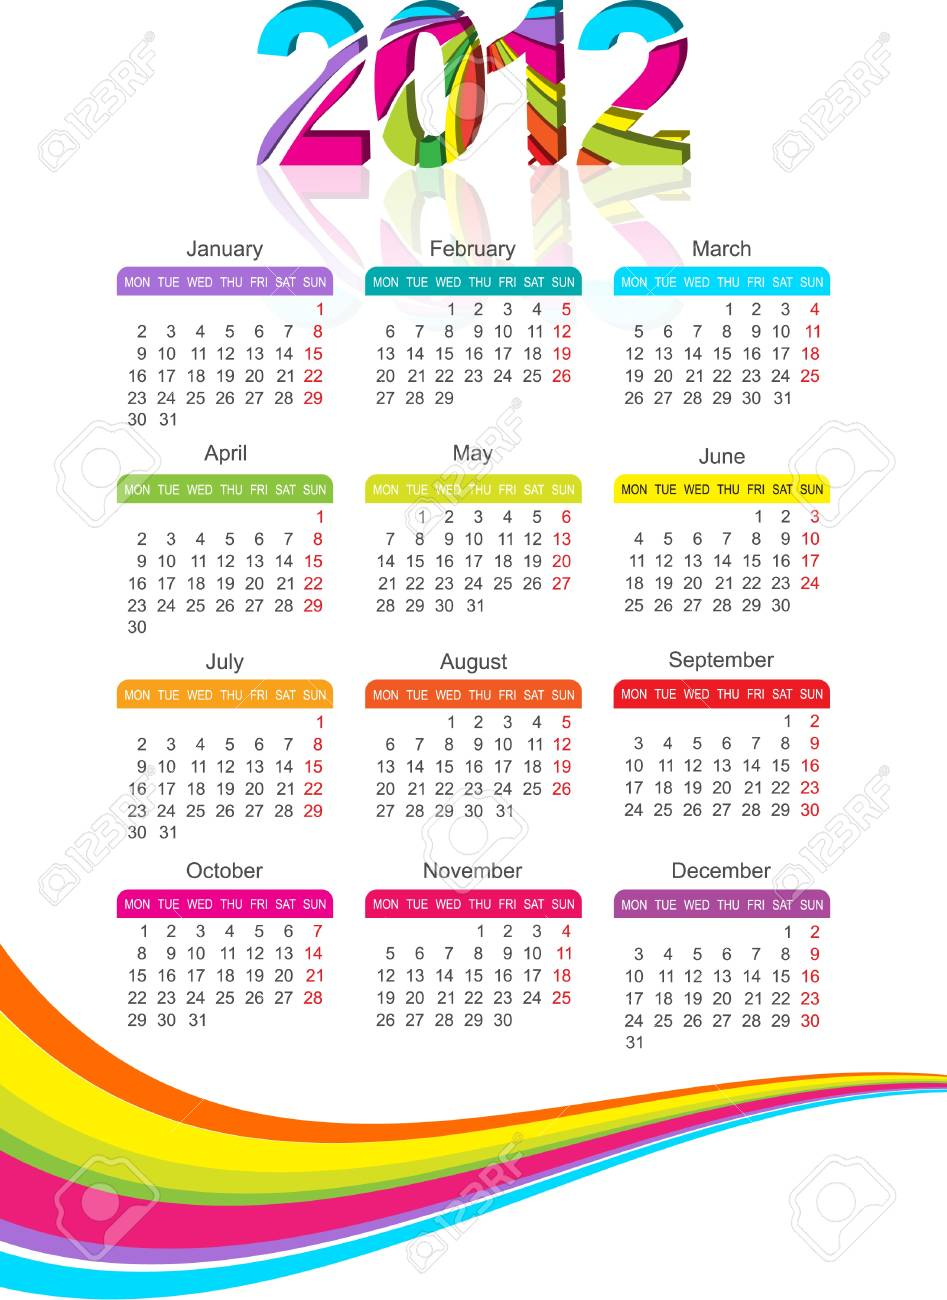 vertical calendar for 2012 year with rainbow. Vector illustration Stock Vector - 10475198